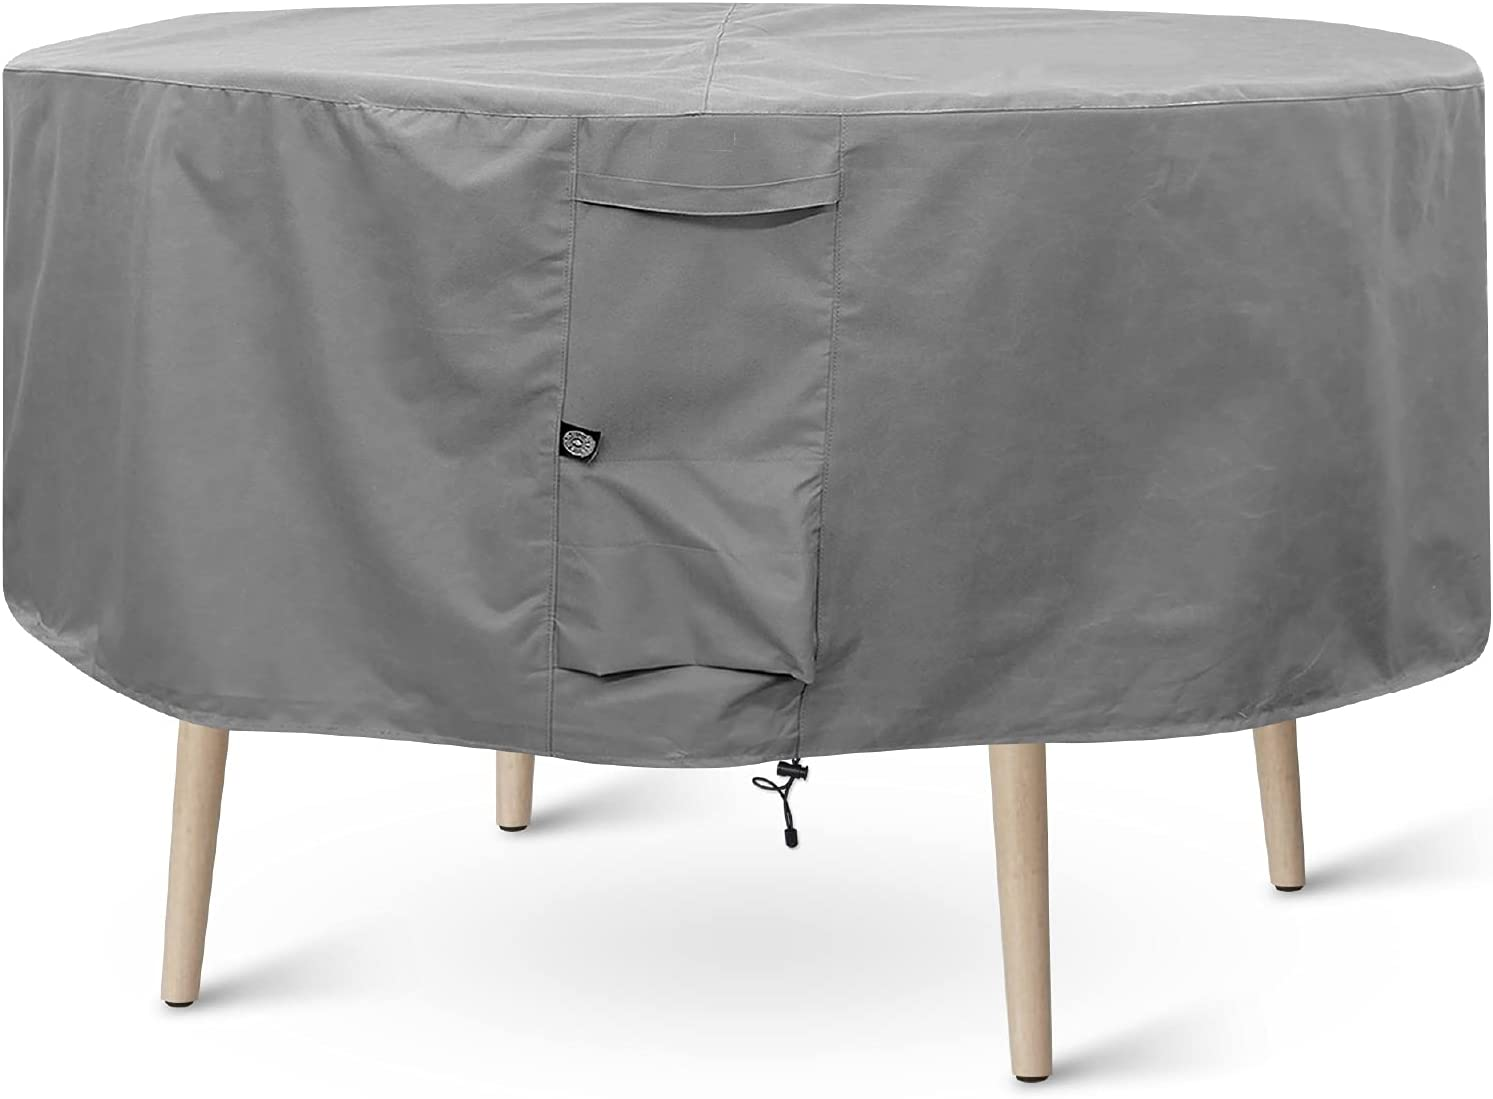 KHOMO GEAR Round Patio Table & Chair Set Cover - Durable and Water Resistant Outdoor Furniture Cover (Grey, Medium - 70